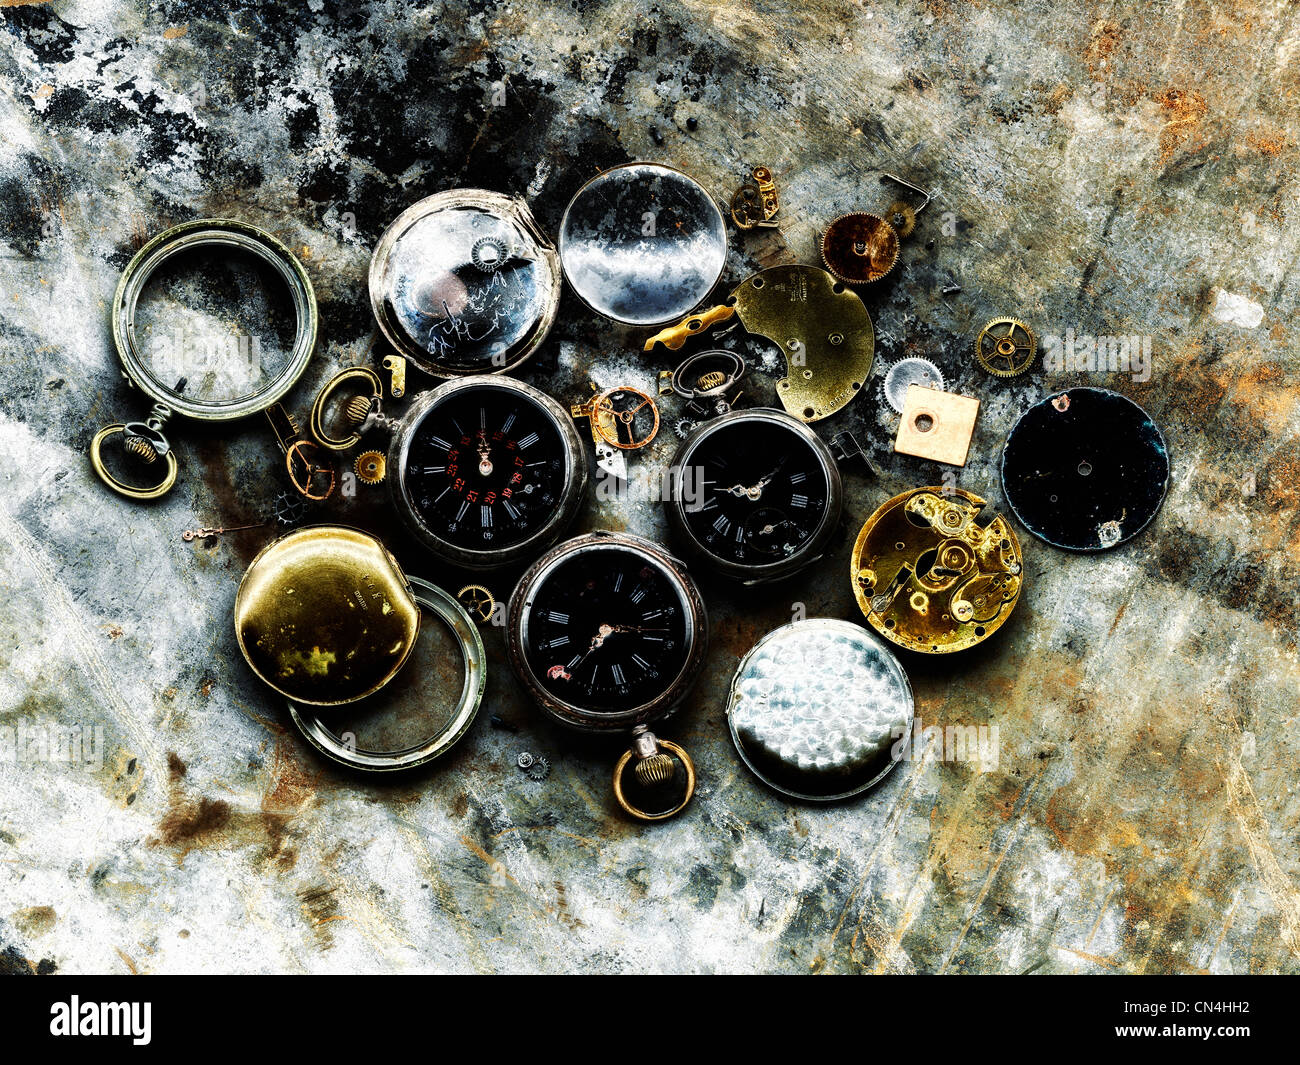 Broken pocket watches Stock Photo